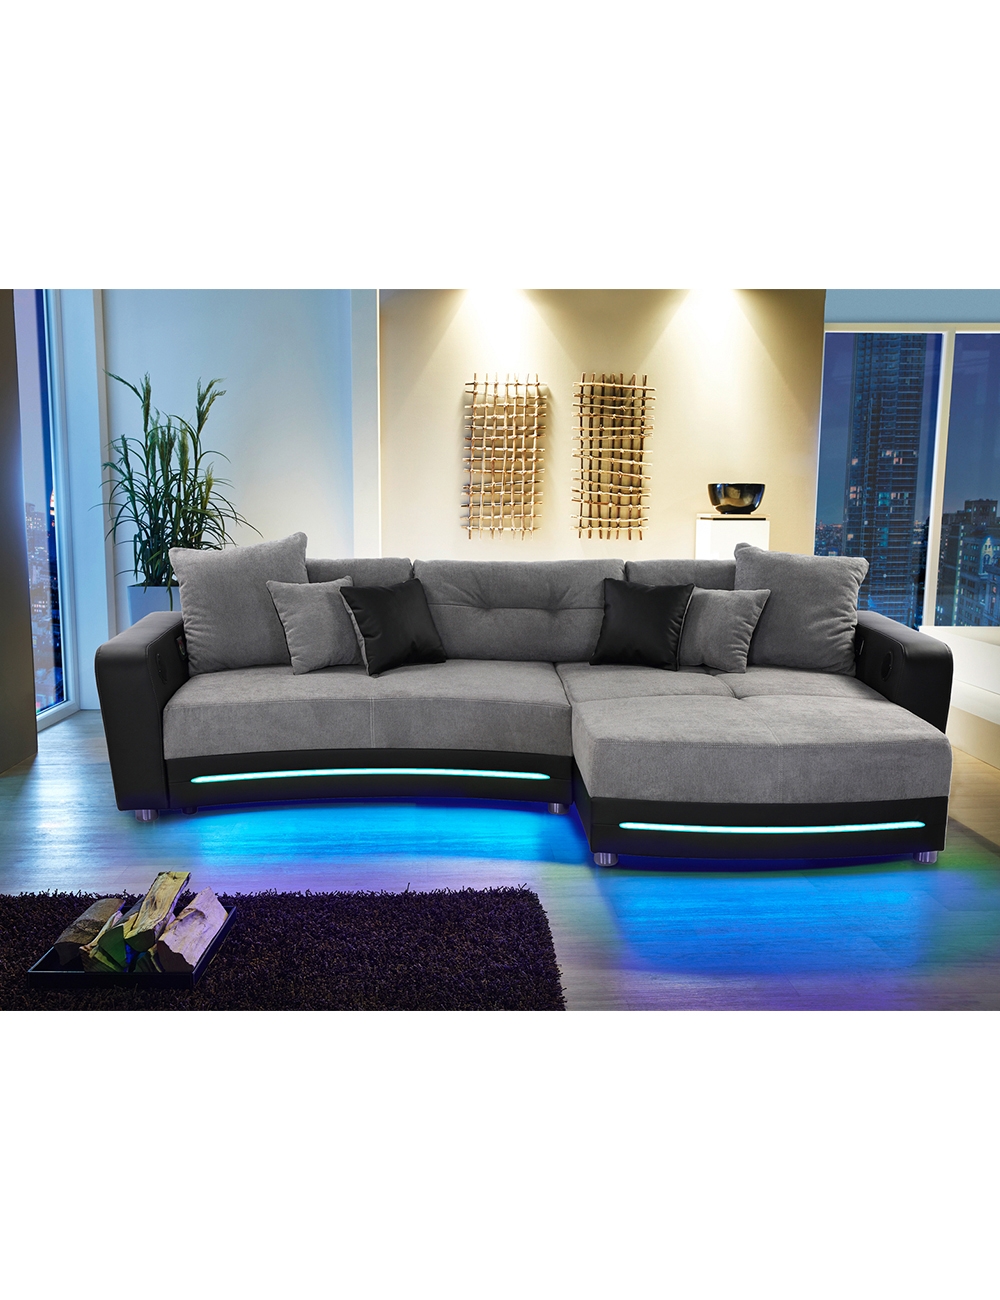 ecksofa party mit beleuchtungsleiste und soundsystem. Black Bedroom Furniture Sets. Home Design Ideas